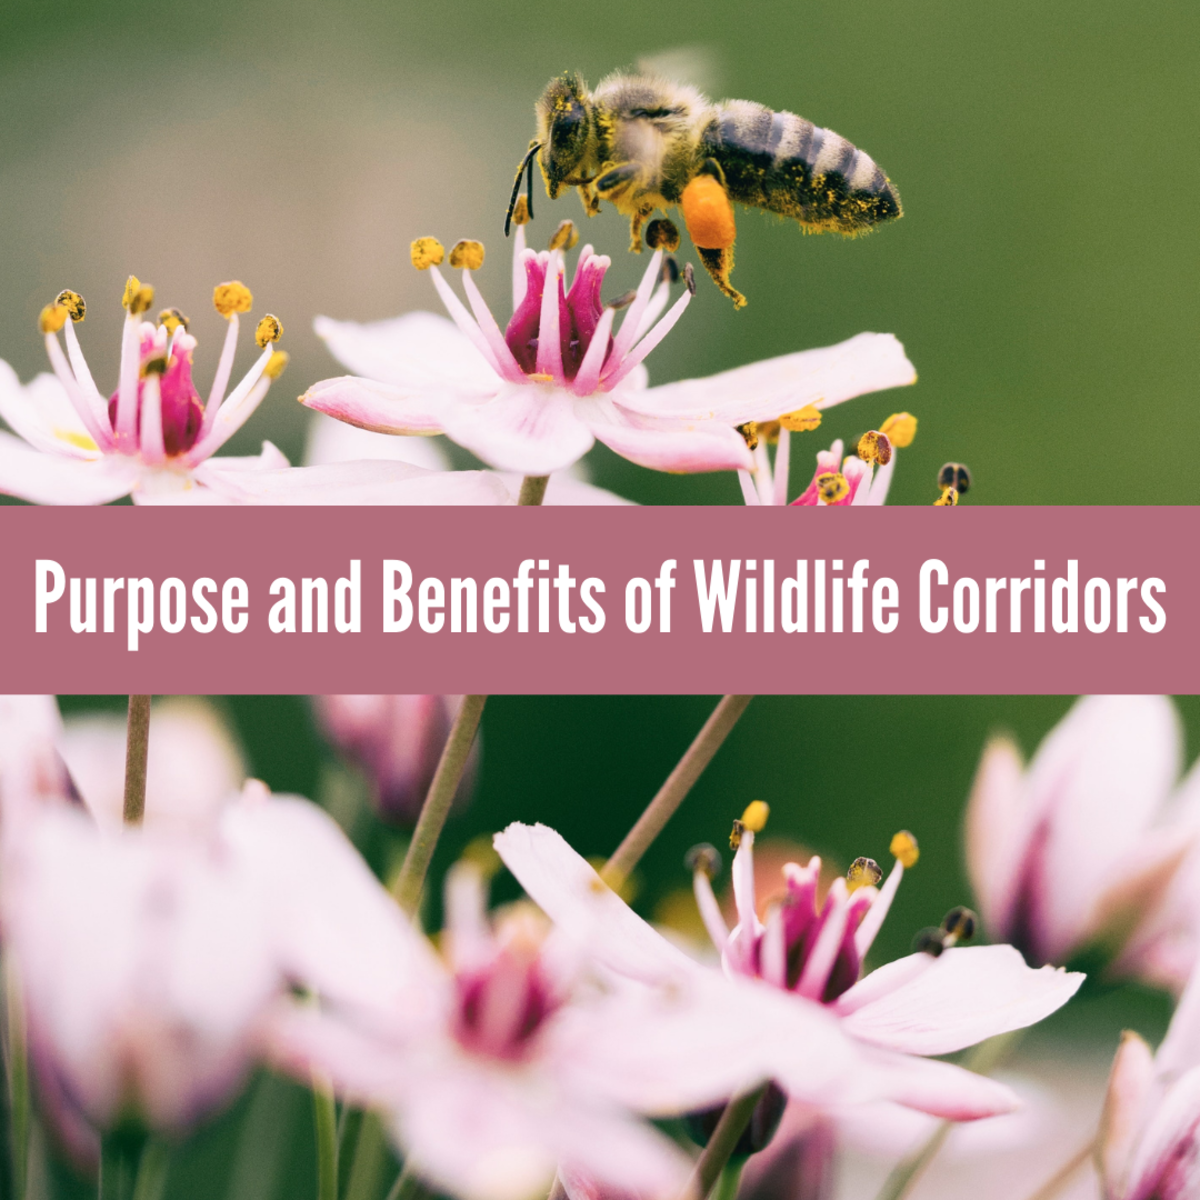 Learn about the problems with population fragmentation and how wildlife corridors could help solve them.